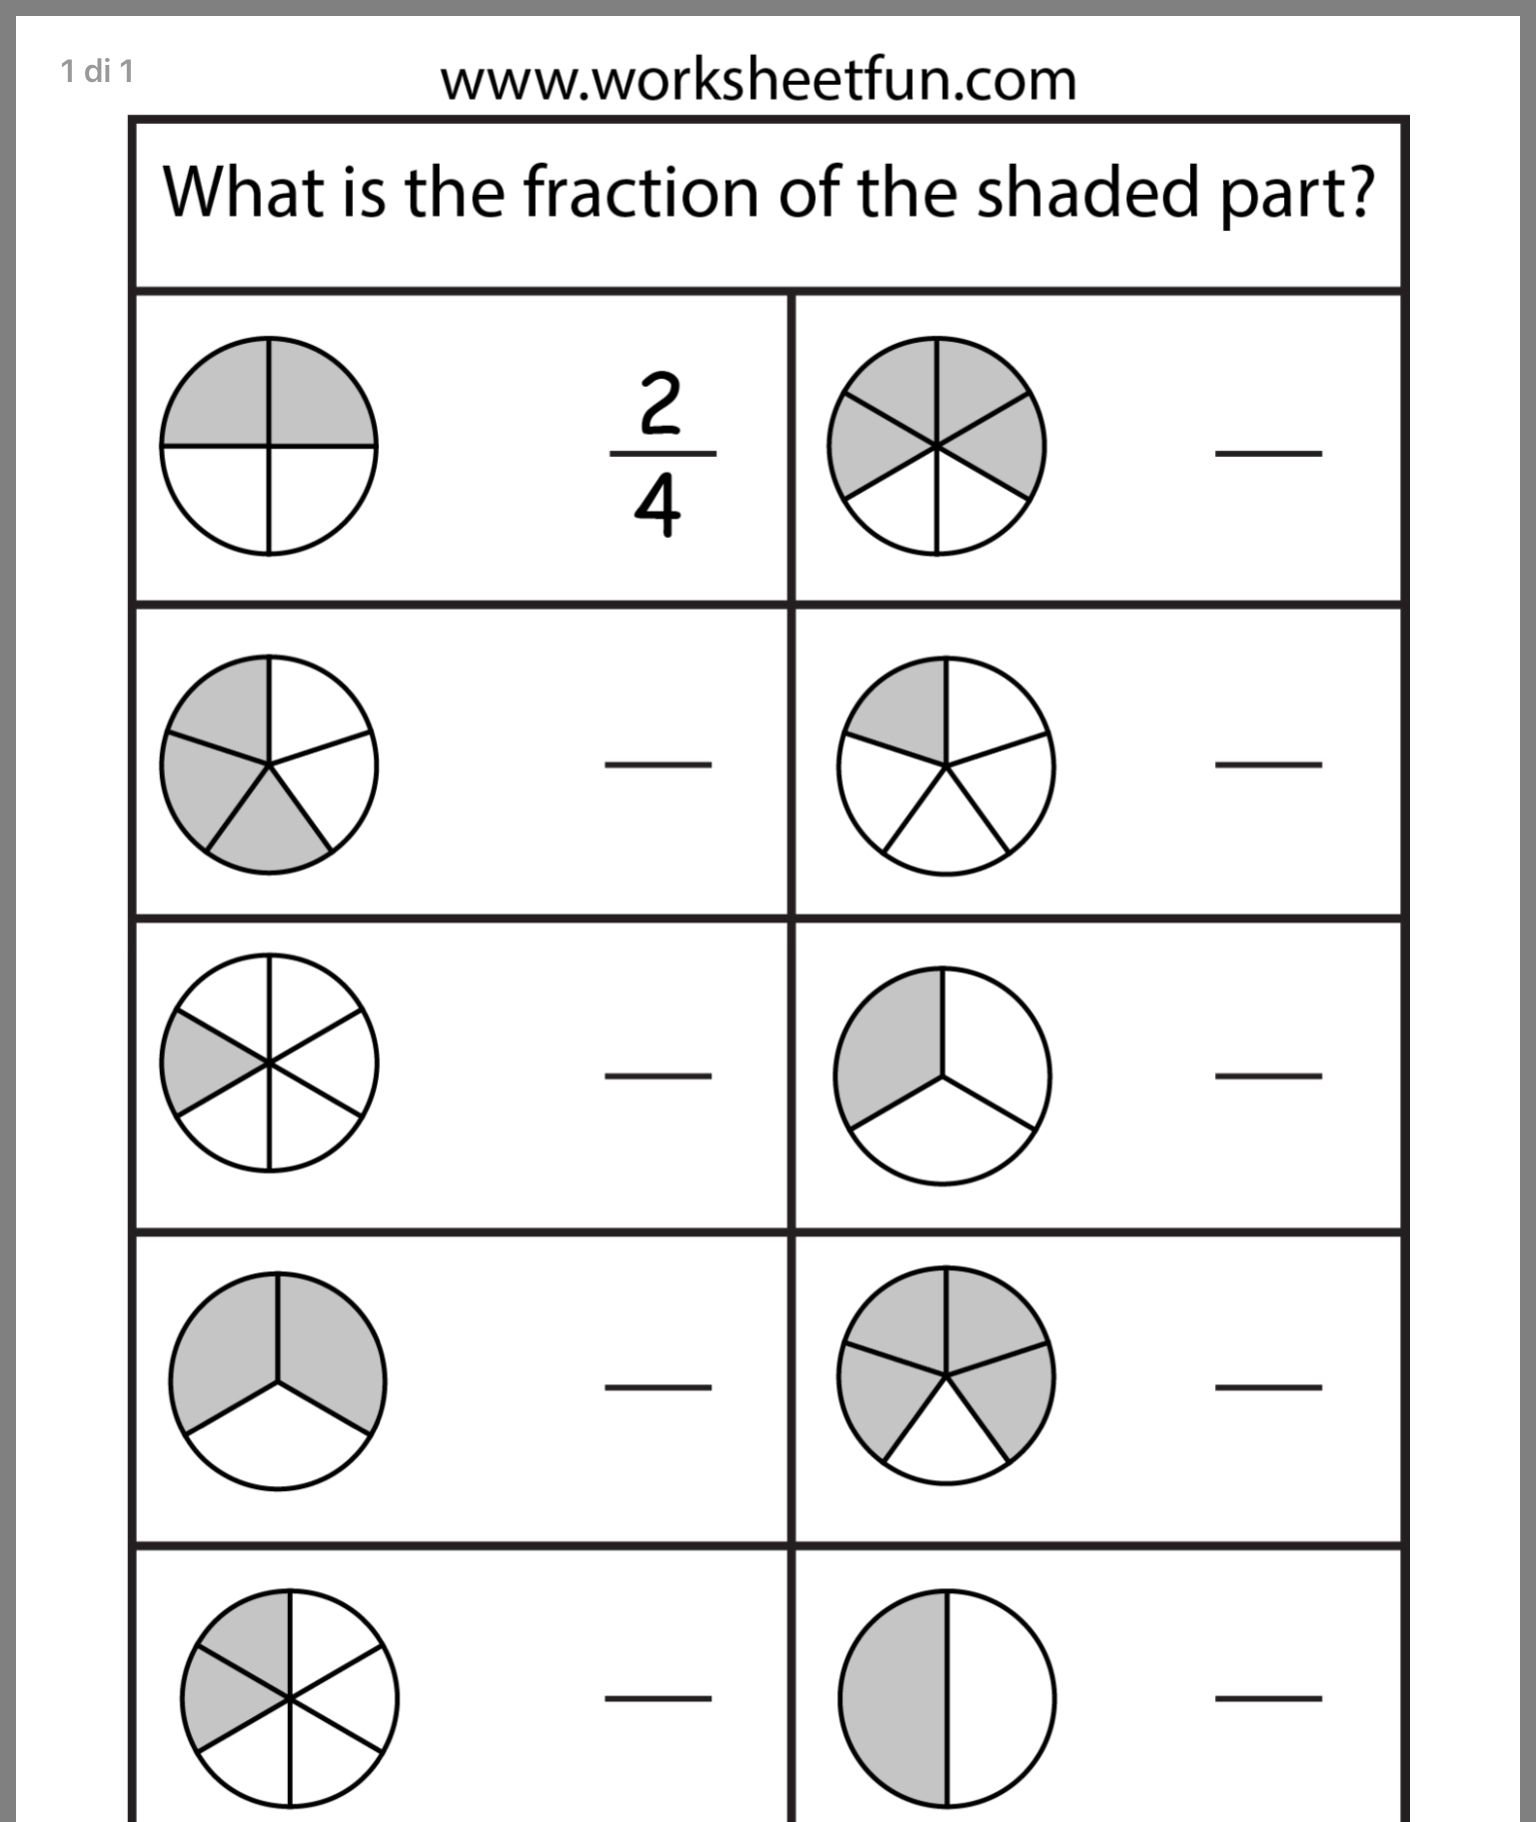 Pin By Rene Scarb On Worksheetfun Fractions Worksheets Math Fractions Worksheets Free Fraction Worksheets